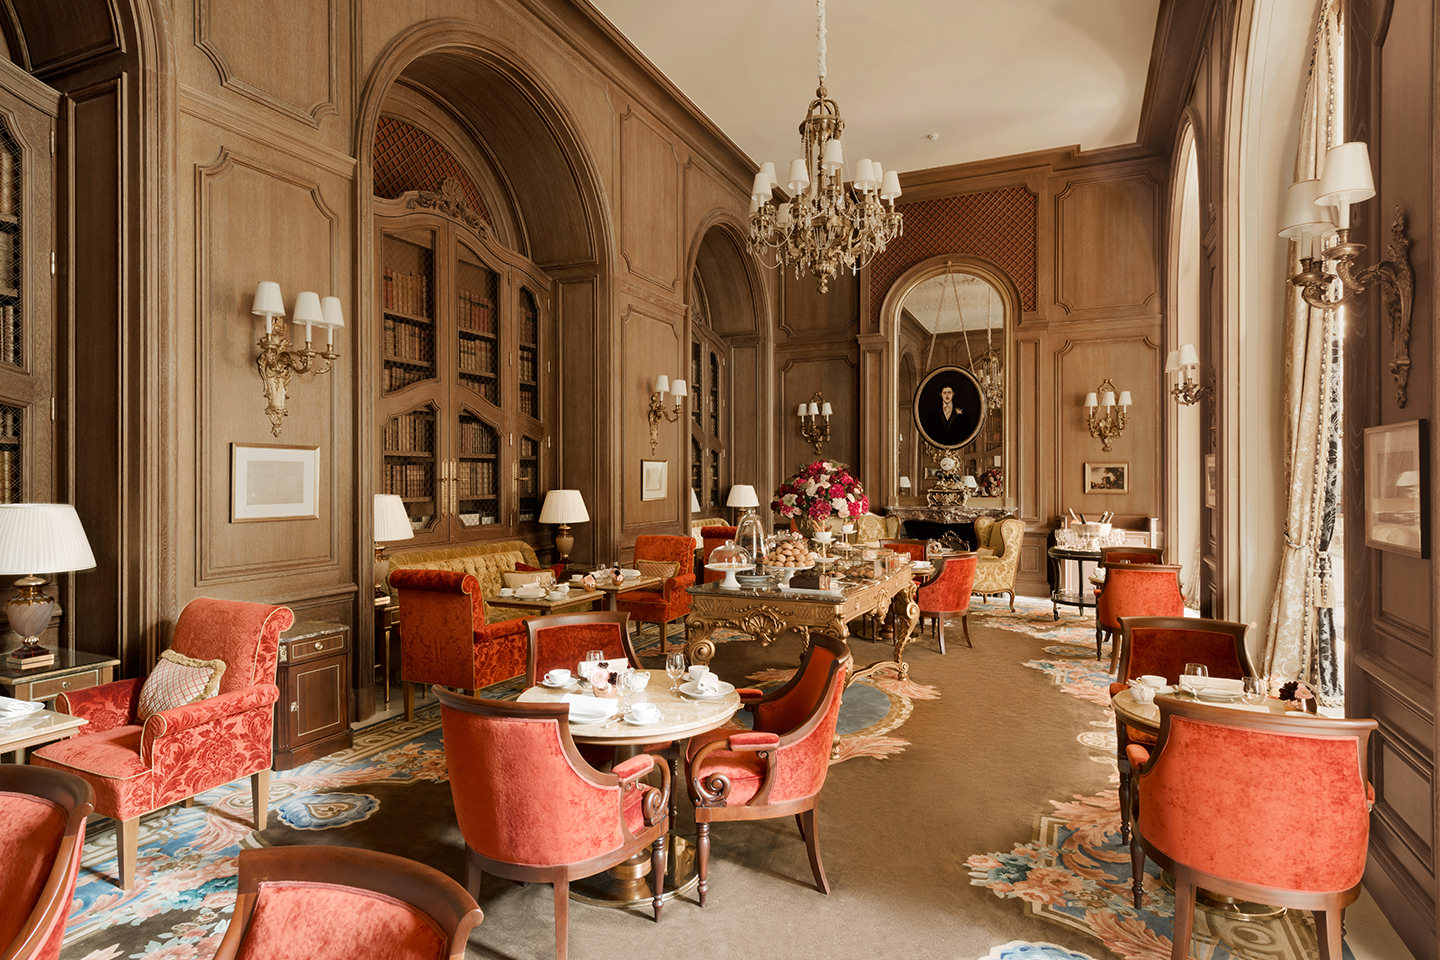 Ritz Hotel, Paris, France